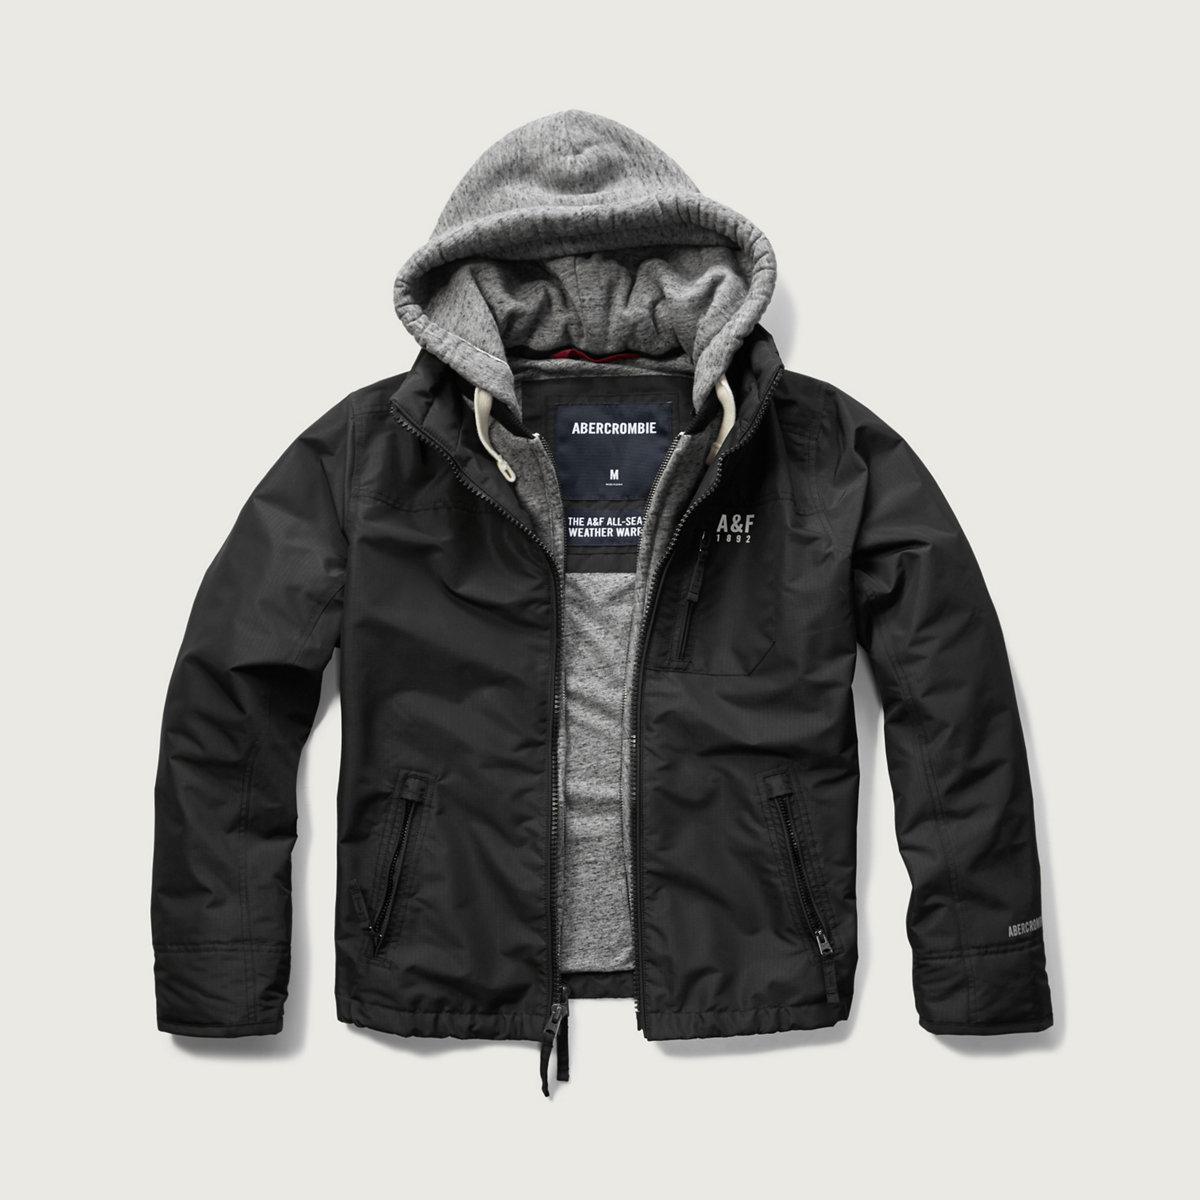 A&F All-Season Weather Warrior Hooded Jacket